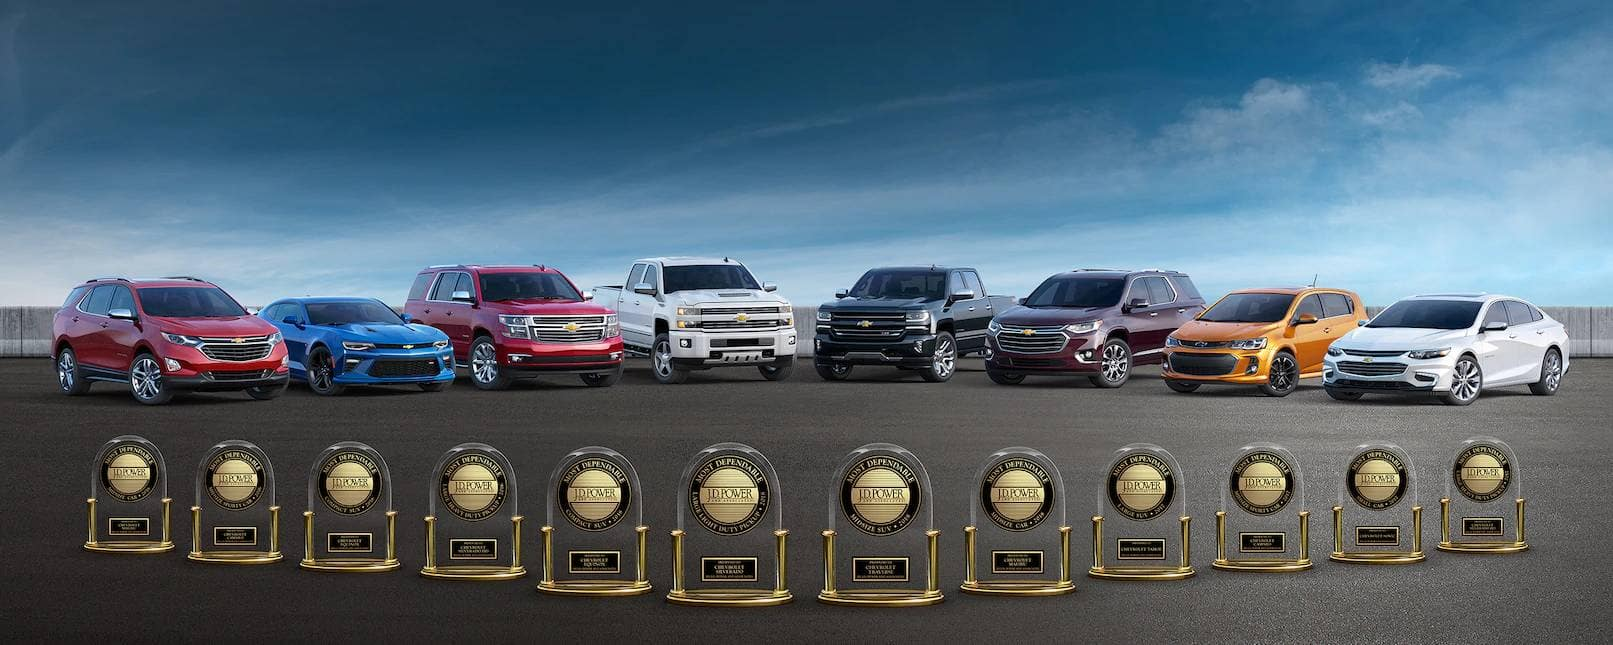 All Chevy JD Power Awards